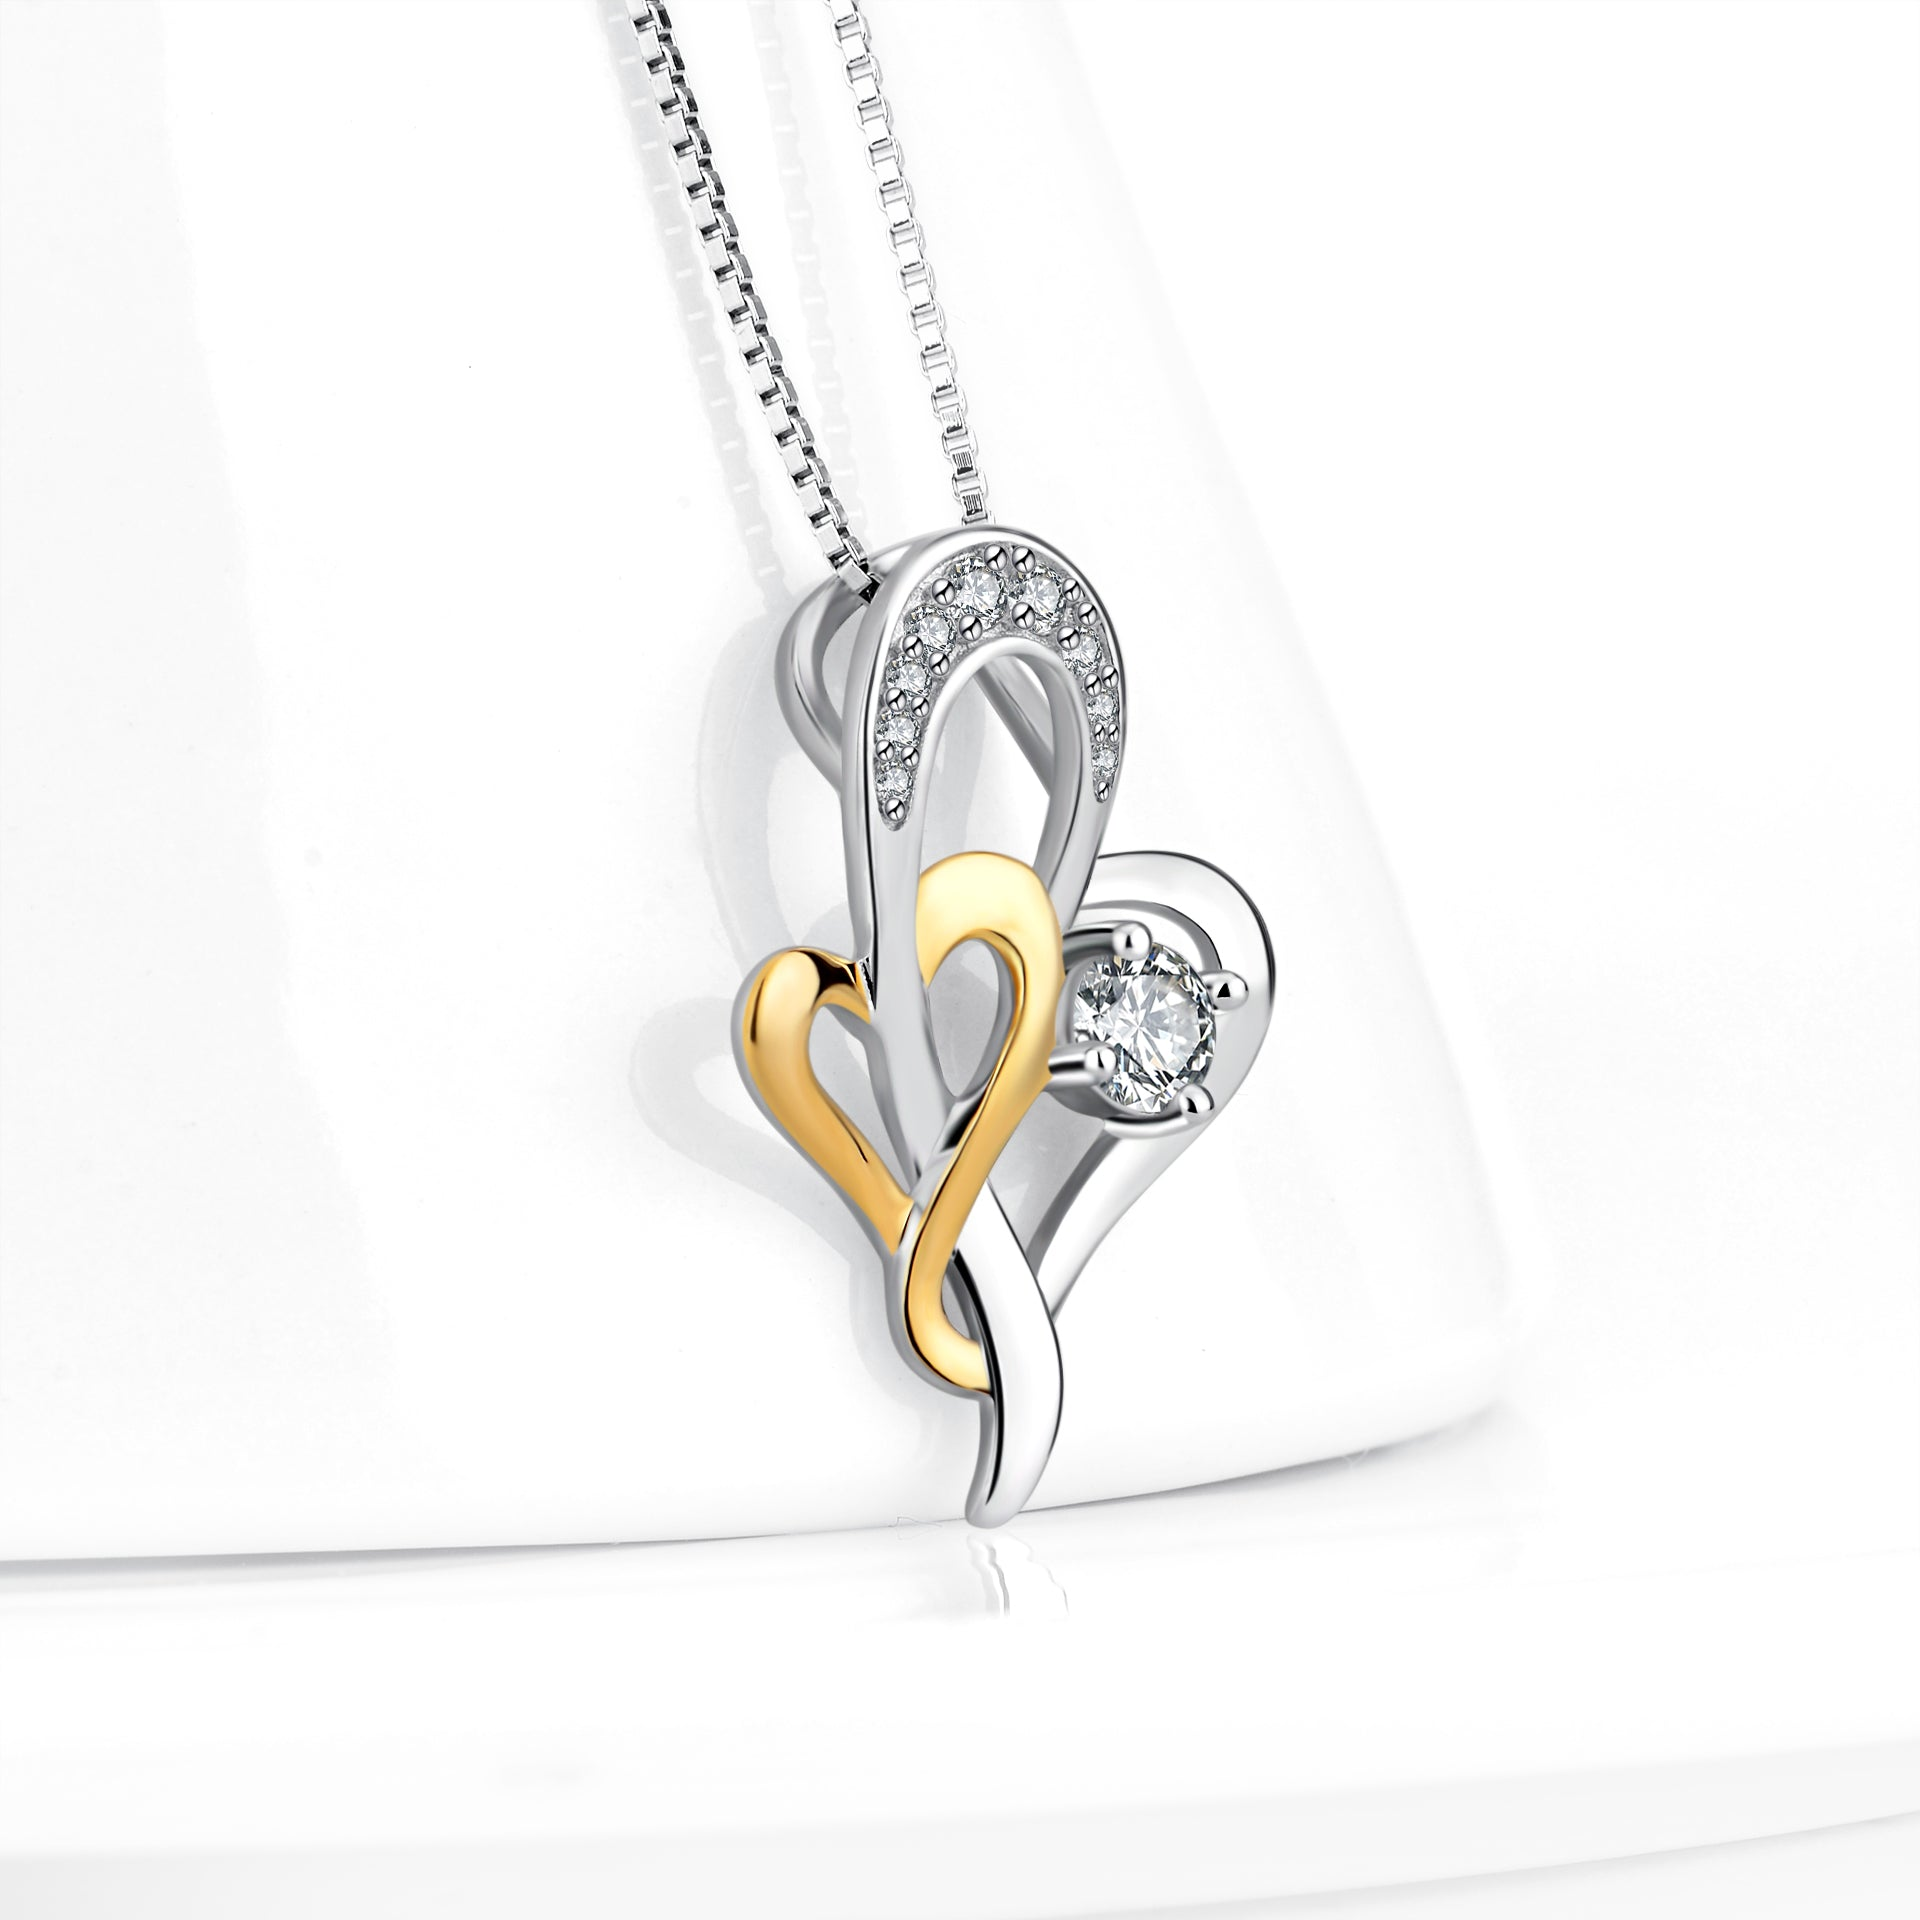 Heart Silver Pendant Necklace Eternal Lifetime Loving Heart Necklace Valentines Gift for wholesale